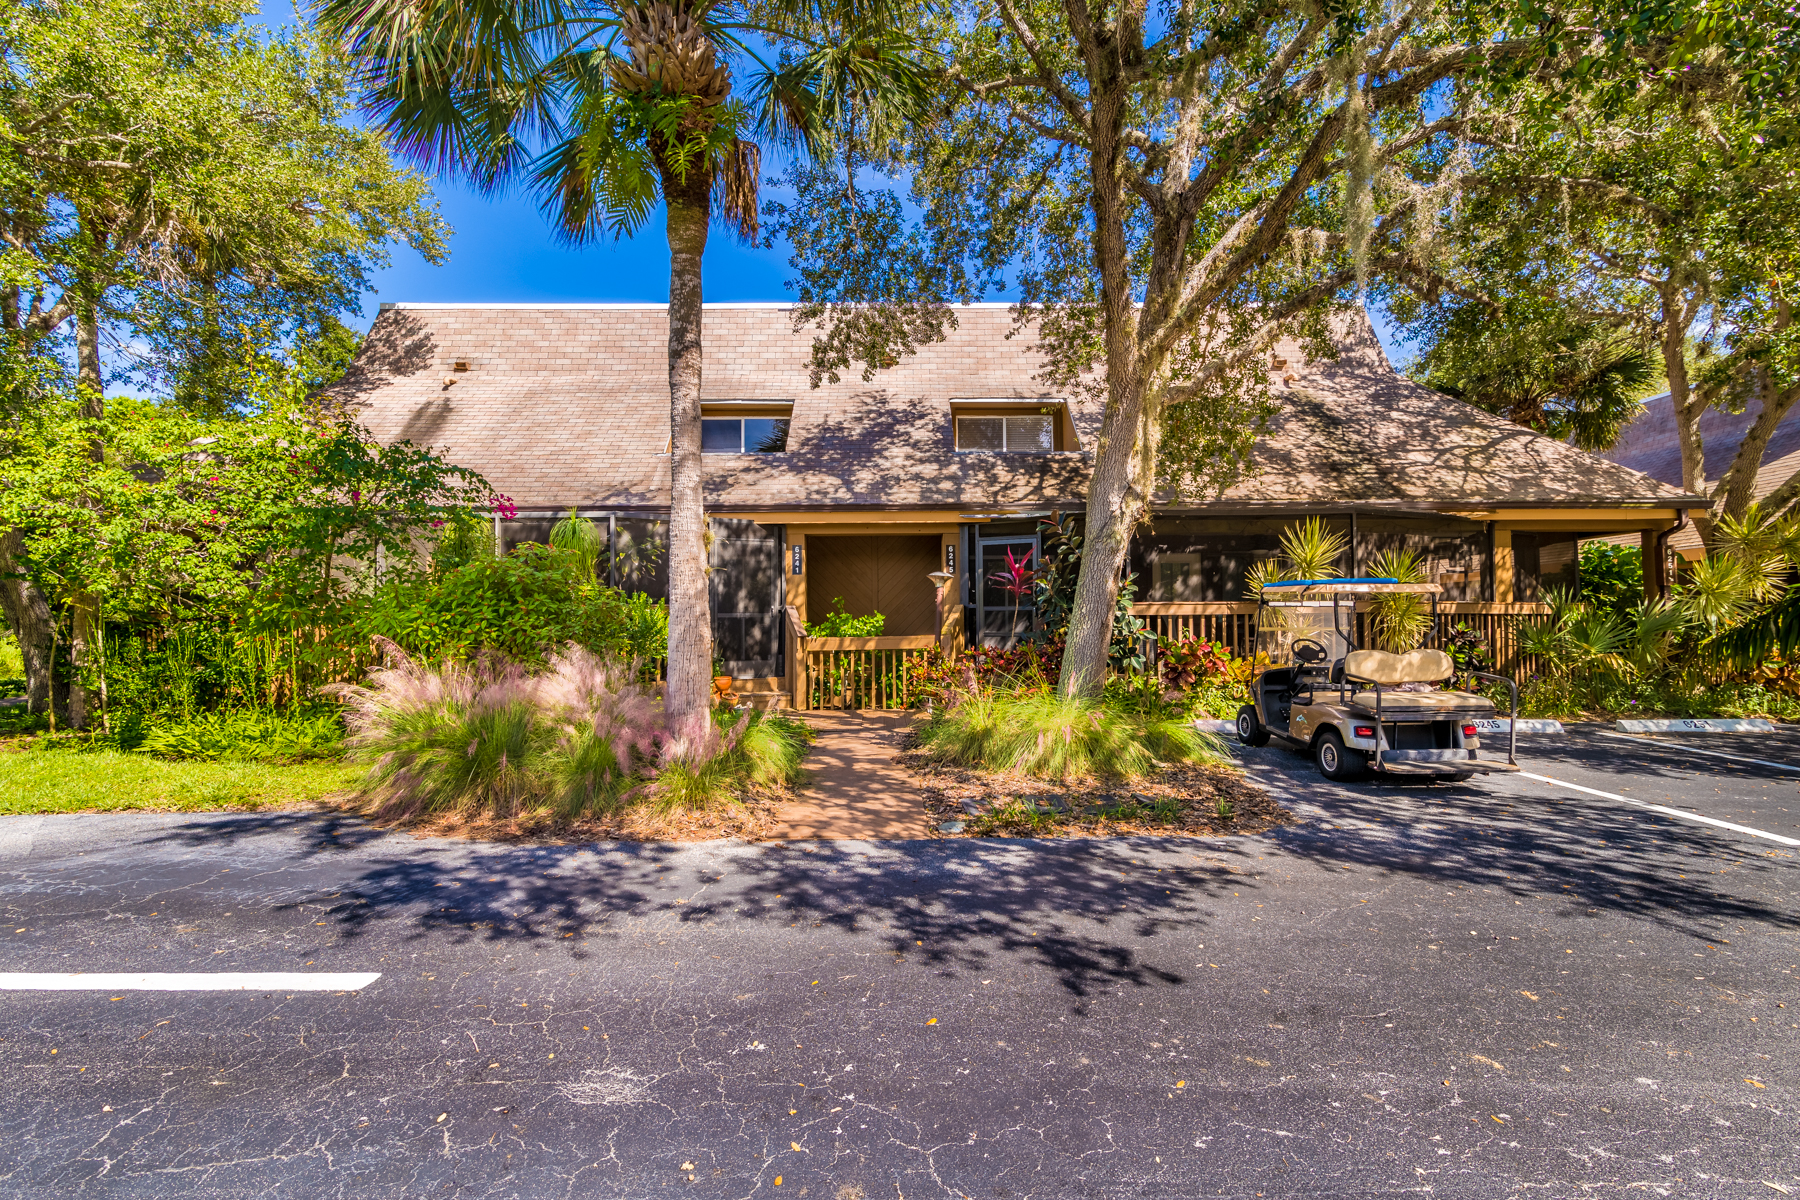 Single Family Home for Sale at Tropical Paradise in Treetop Village 6245 Treetop Drive Melbourne Beach, Florida 32951 United States